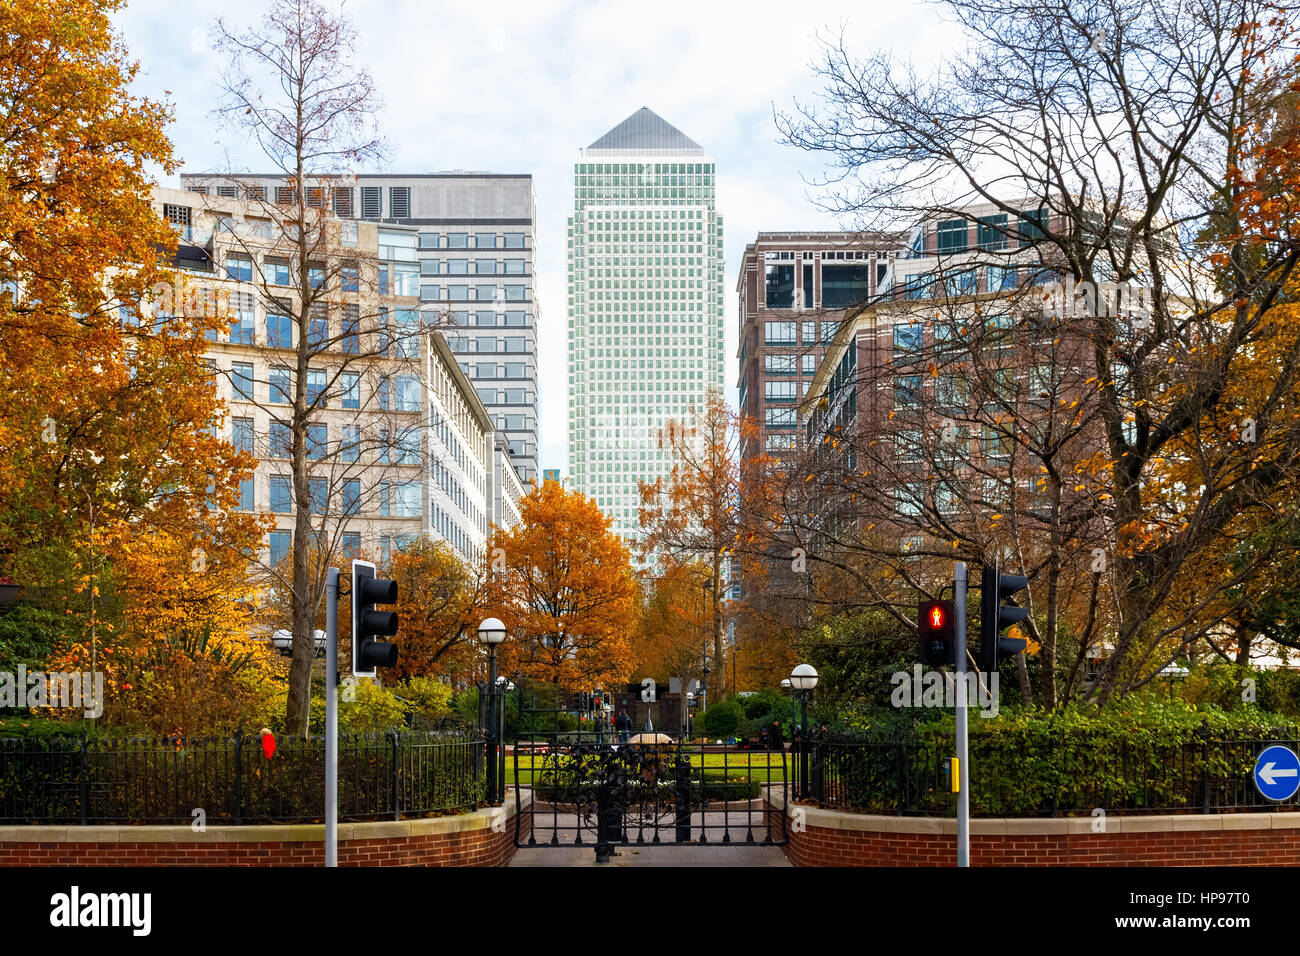 Canary Wharf in London seen from Westferry Circus - Stock Image